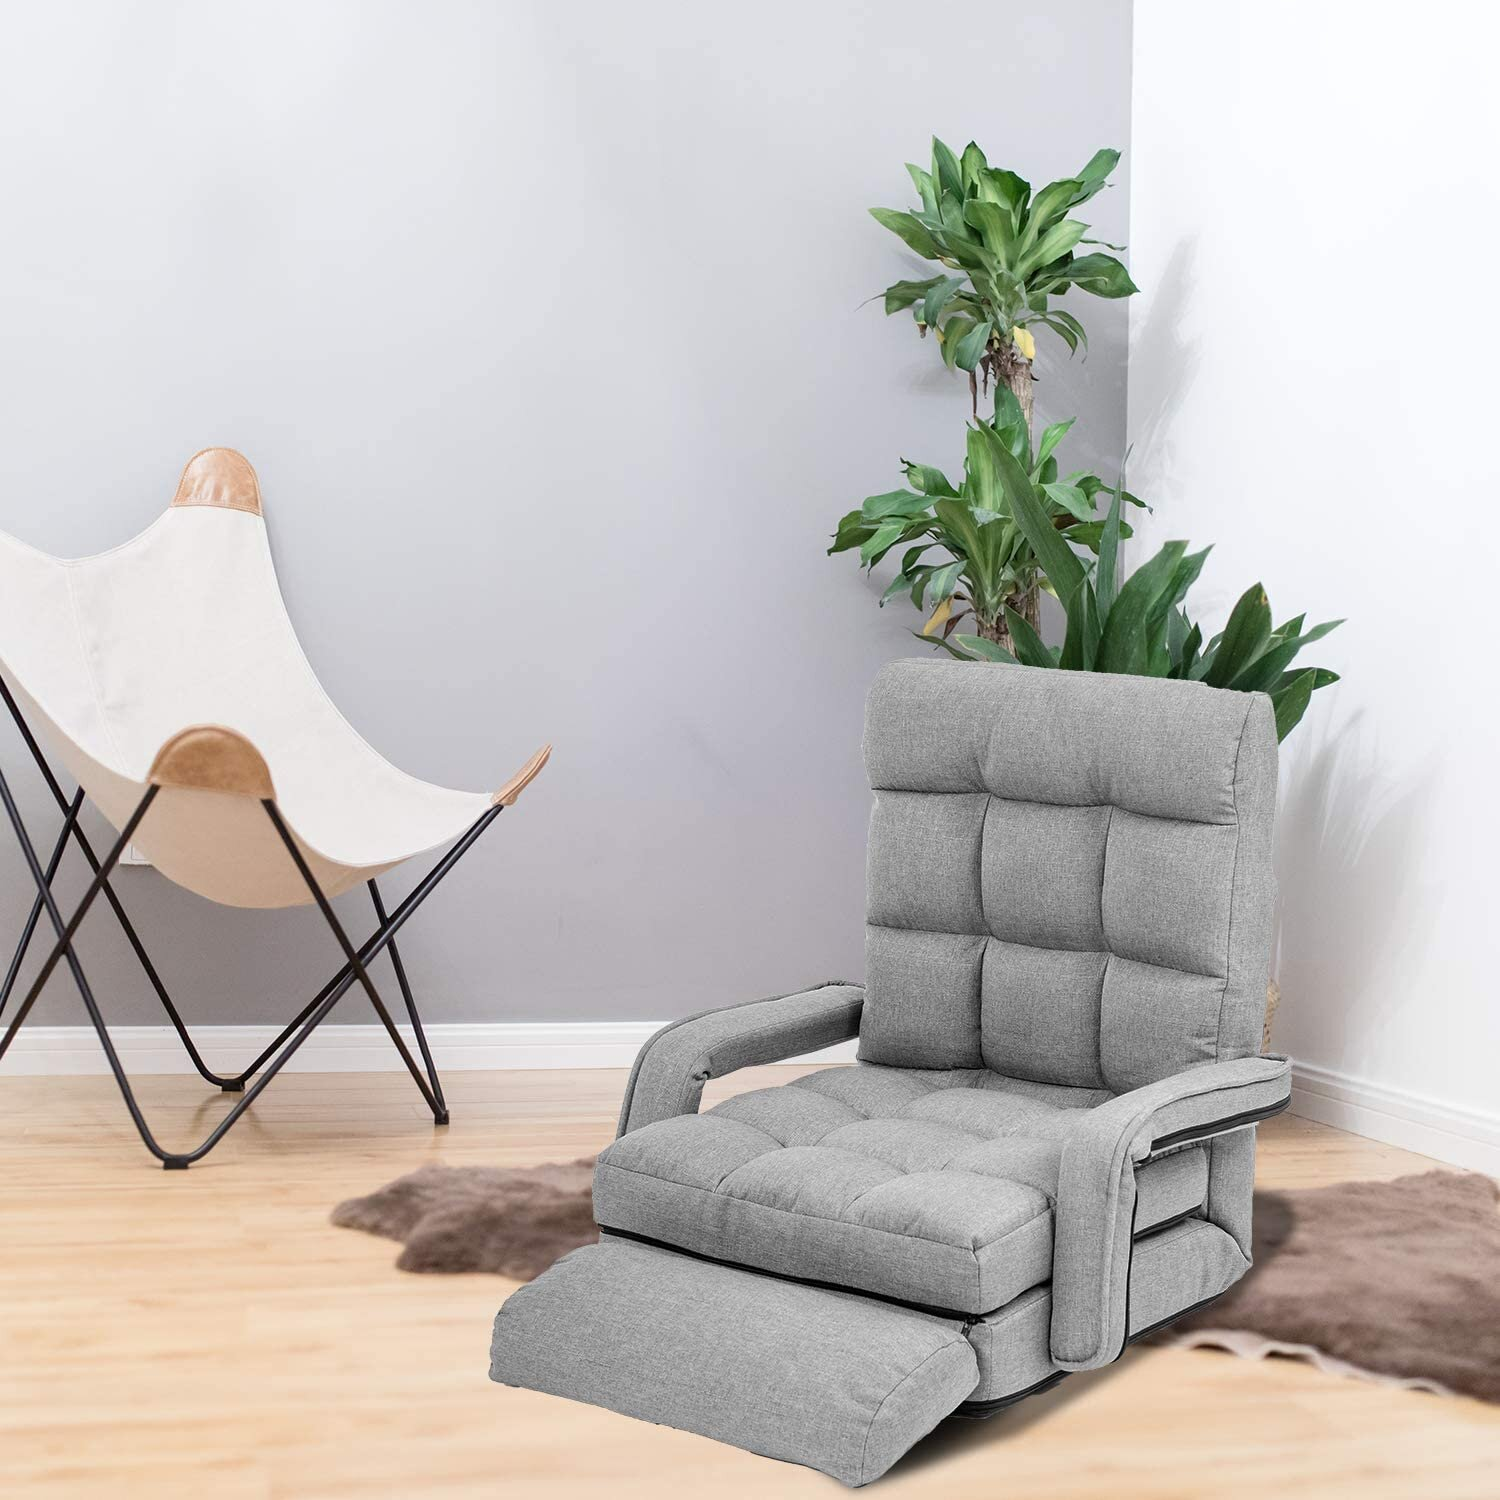 Trule Waytrim Indoor Chaise Lounge Sofa Folding Lazy Sofa Floor Chair 6 Position Folding Padded Lounger Bed With Armrests And A Pillow Chaise Couch Gray Wayfair